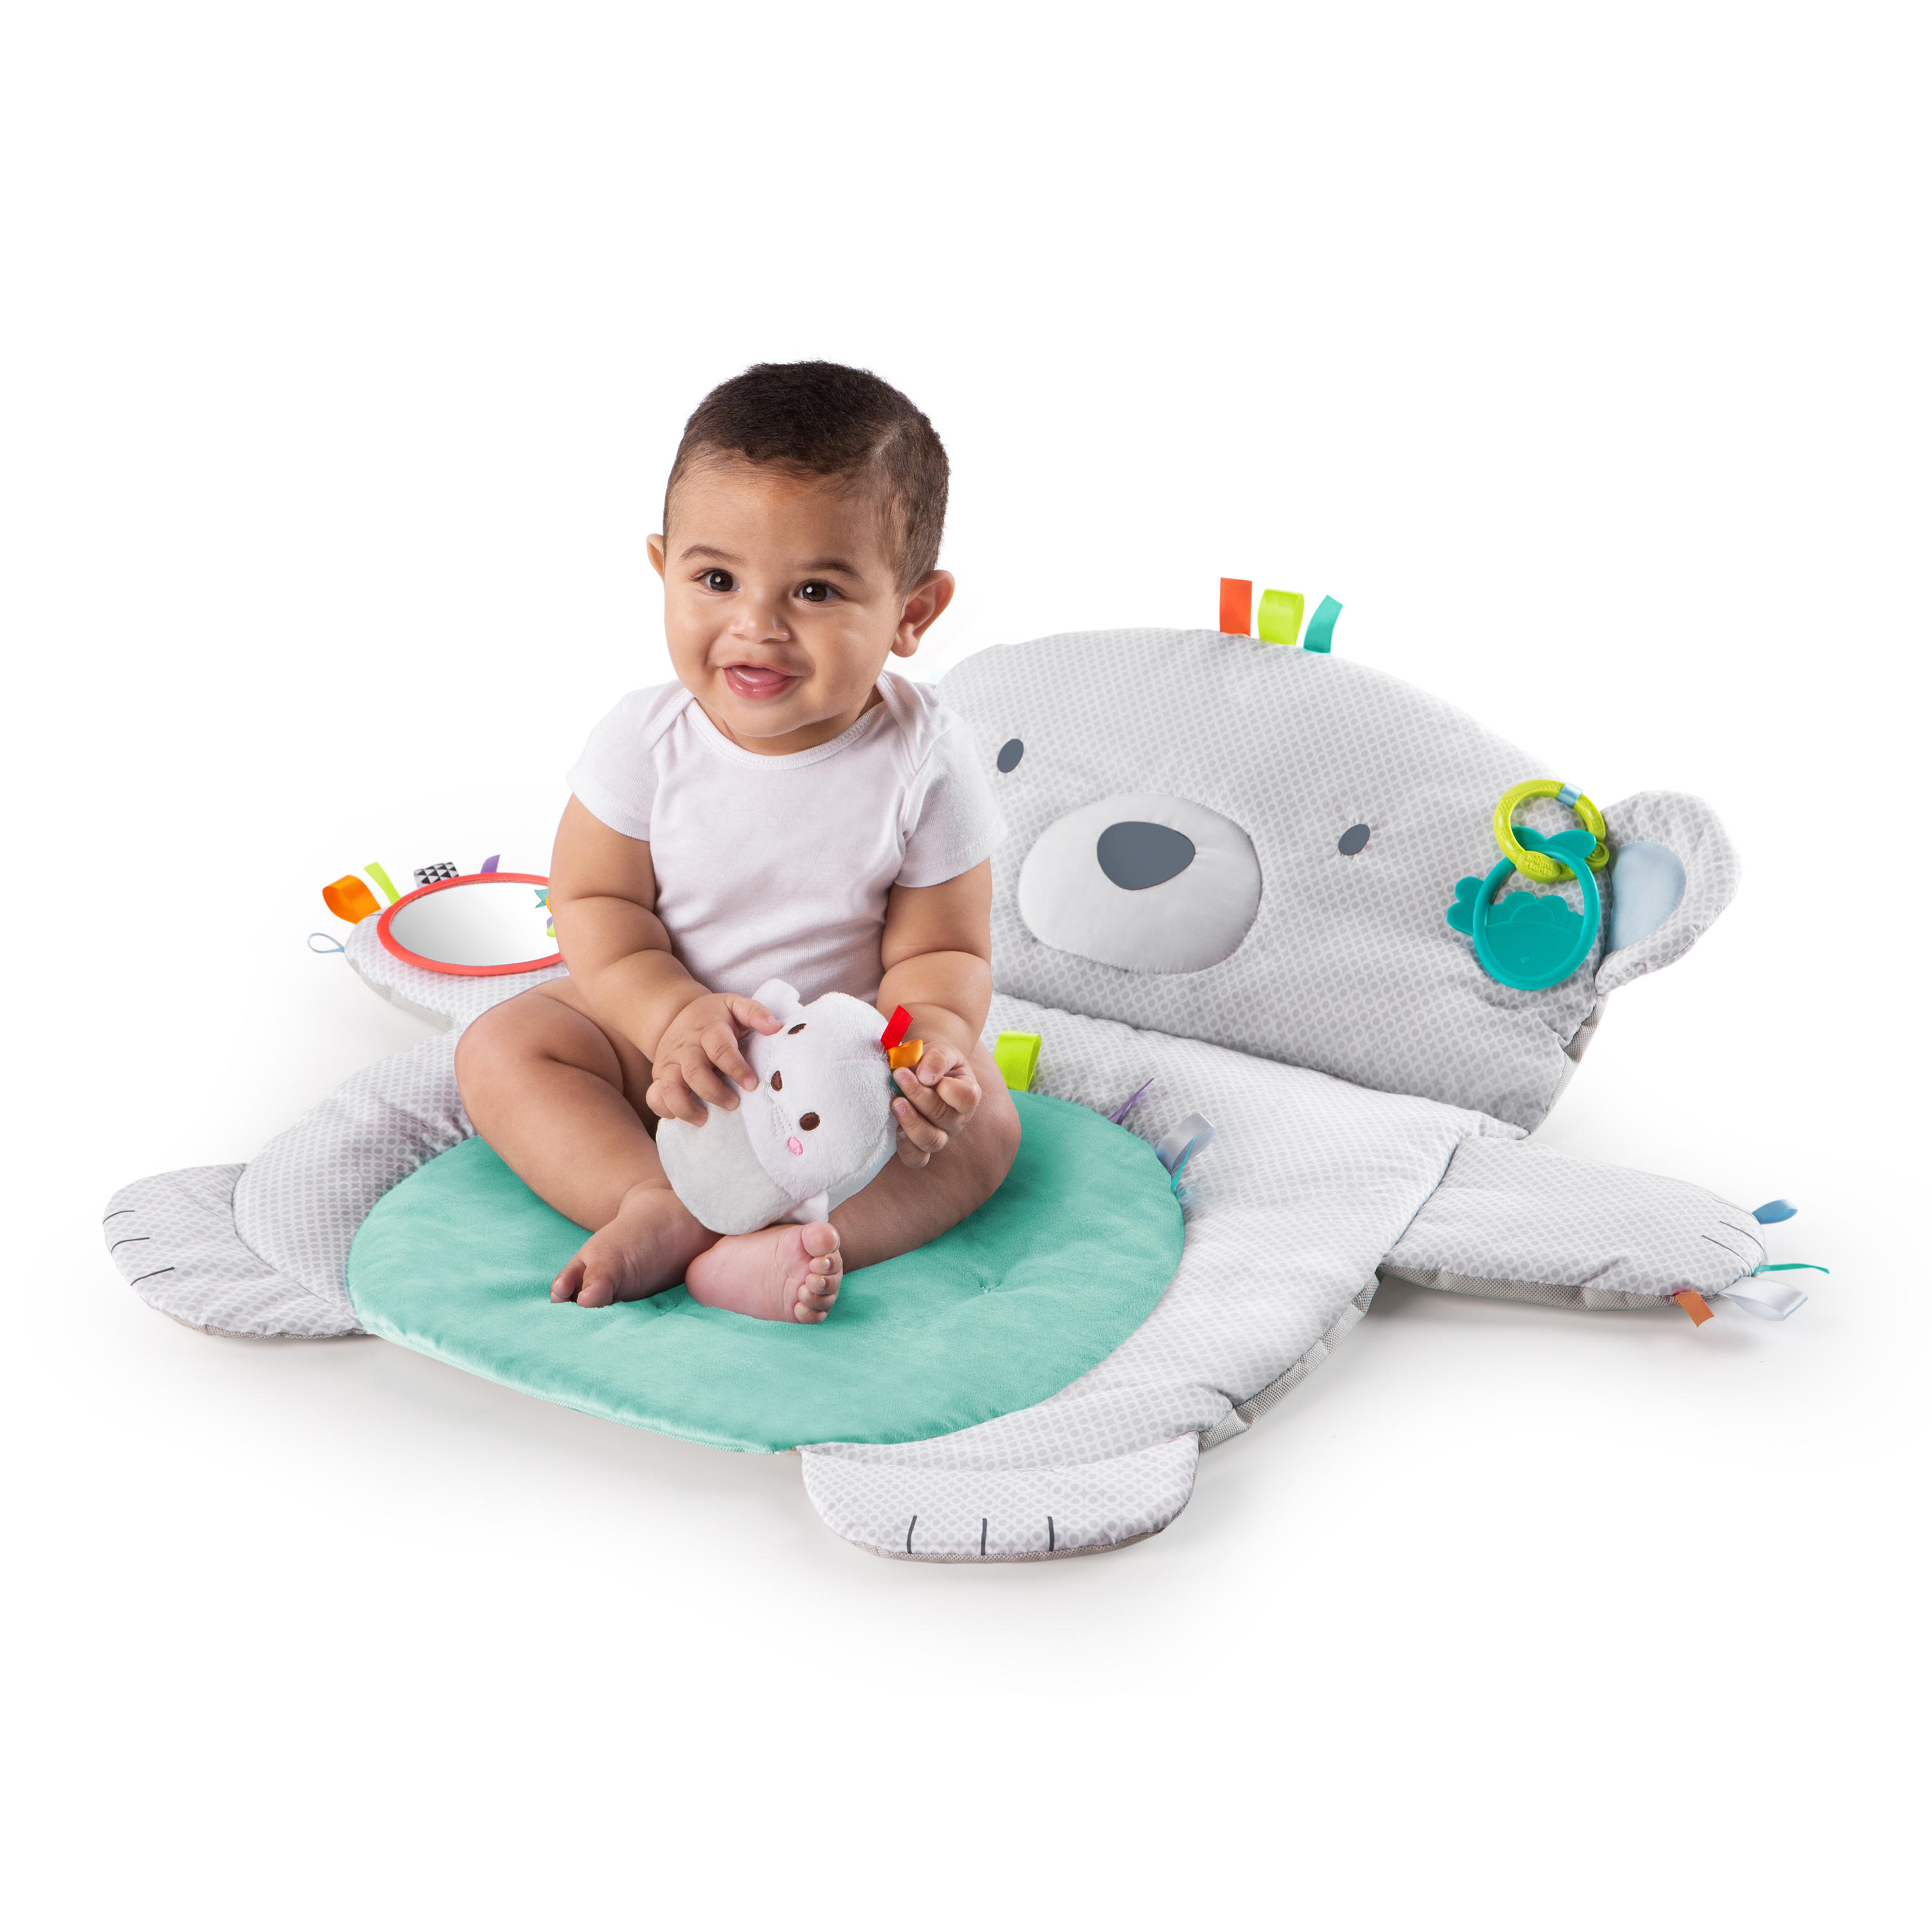 Tummy Time Prop & Play™